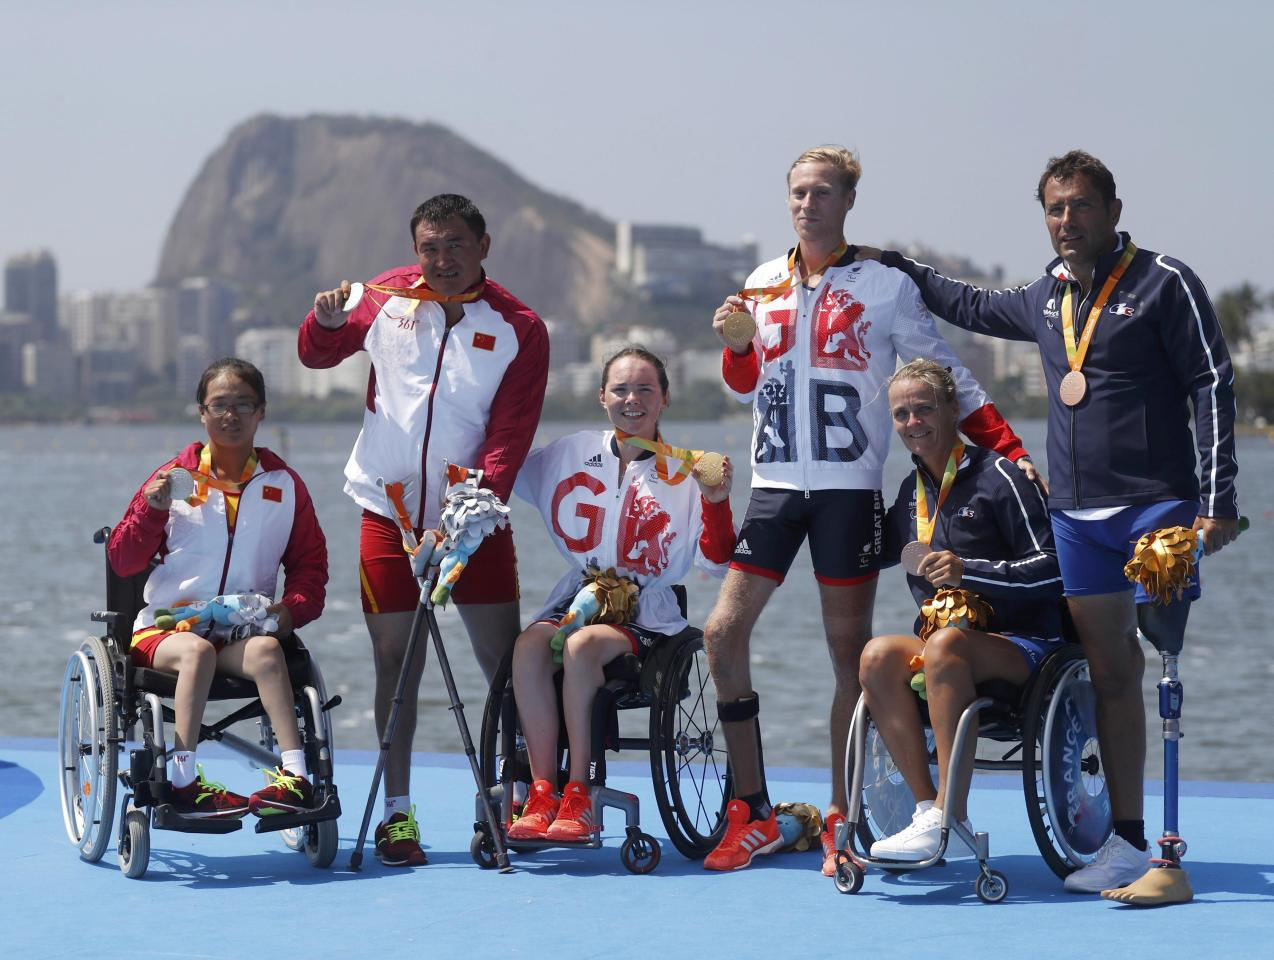 2016 Rio Paralympics - Rowing- Victory Ceremony - TA Mixed Double Scull TAMIX2X Victory Ceremony - Lagoa Stadium - Rio de Janeiro, Brazil - 11/09/2016. Silver medalists Shuang Liu and Tianming Fei of China (L to R), gold medalists Lauren Rowles and Laurence Whiteley of Britain and bronze medalists Perle Bouge and Stephane Tardieu of France pose with their medals. REUTERS/Ricardo Moraes   FOR EDITORIAL USE ONLY. NOT FOR SALE FOR MARKETING OR ADVERTISING CAMPAIGNS.